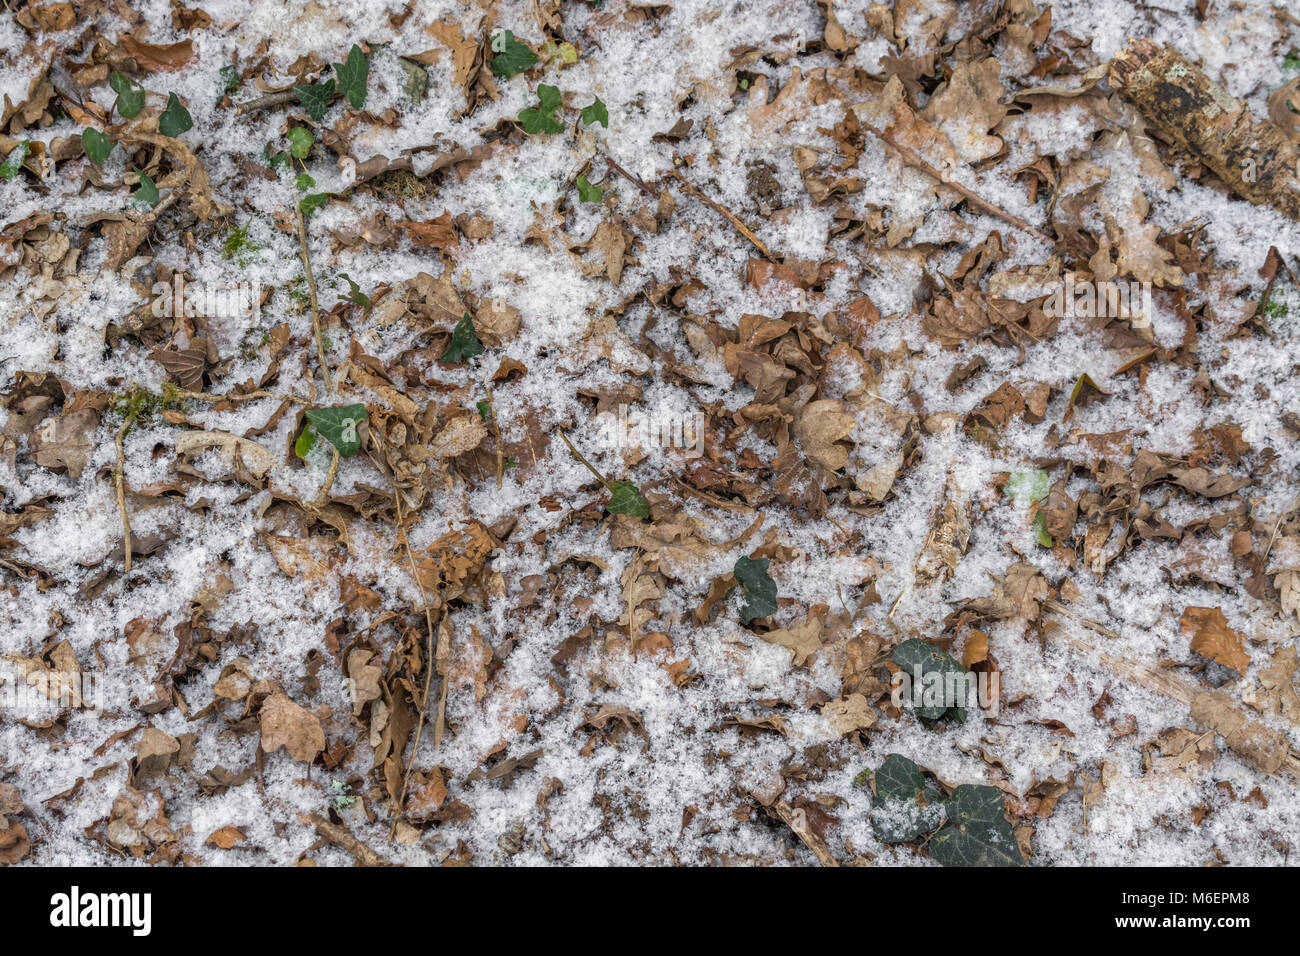 Orangy autumnal leaves covered by a light sprinkling of snow. - Stock Image